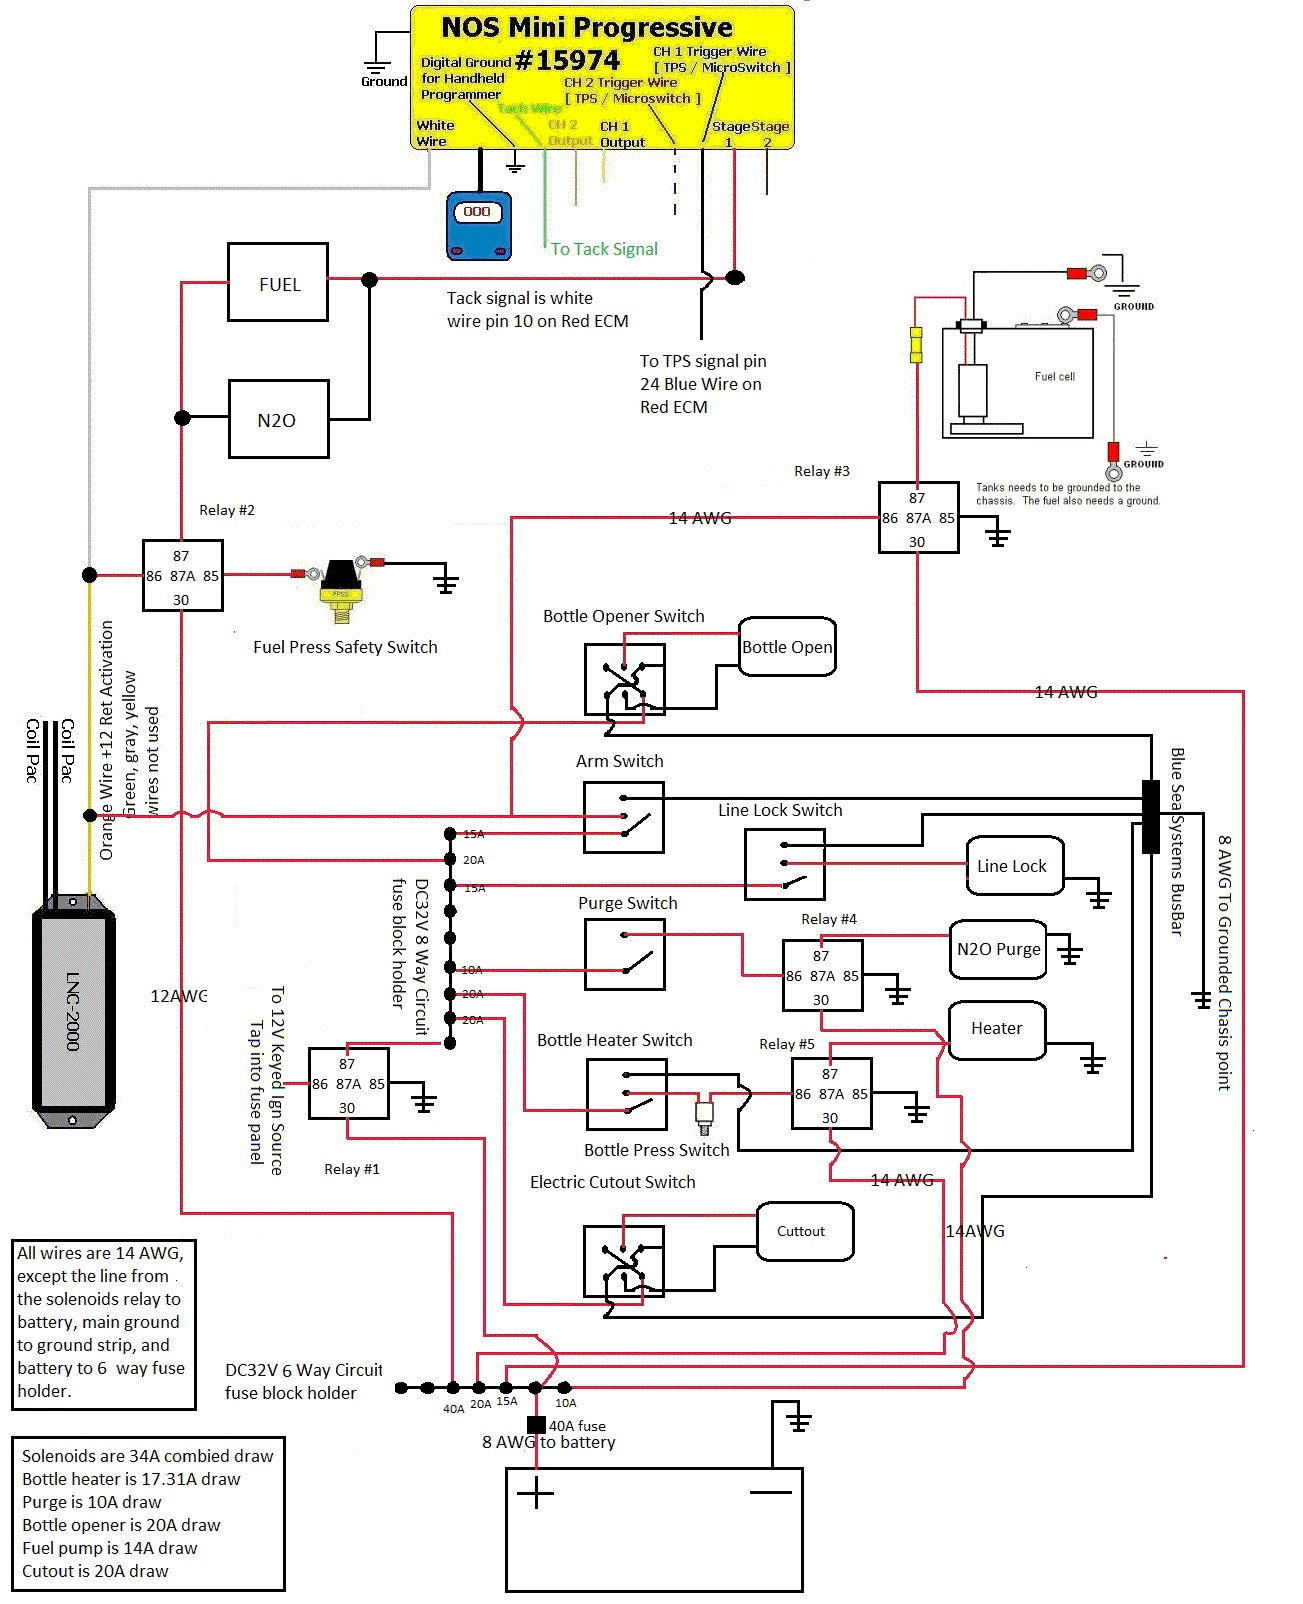 Wiring Diagram Nos Progressive Controller 41 Images For Nitrous N2o 7 Copy C89479d3c1e3edfa2e0e44b8eee63230aff532d2 Mini Issues See Here Ls1tech Camaro And